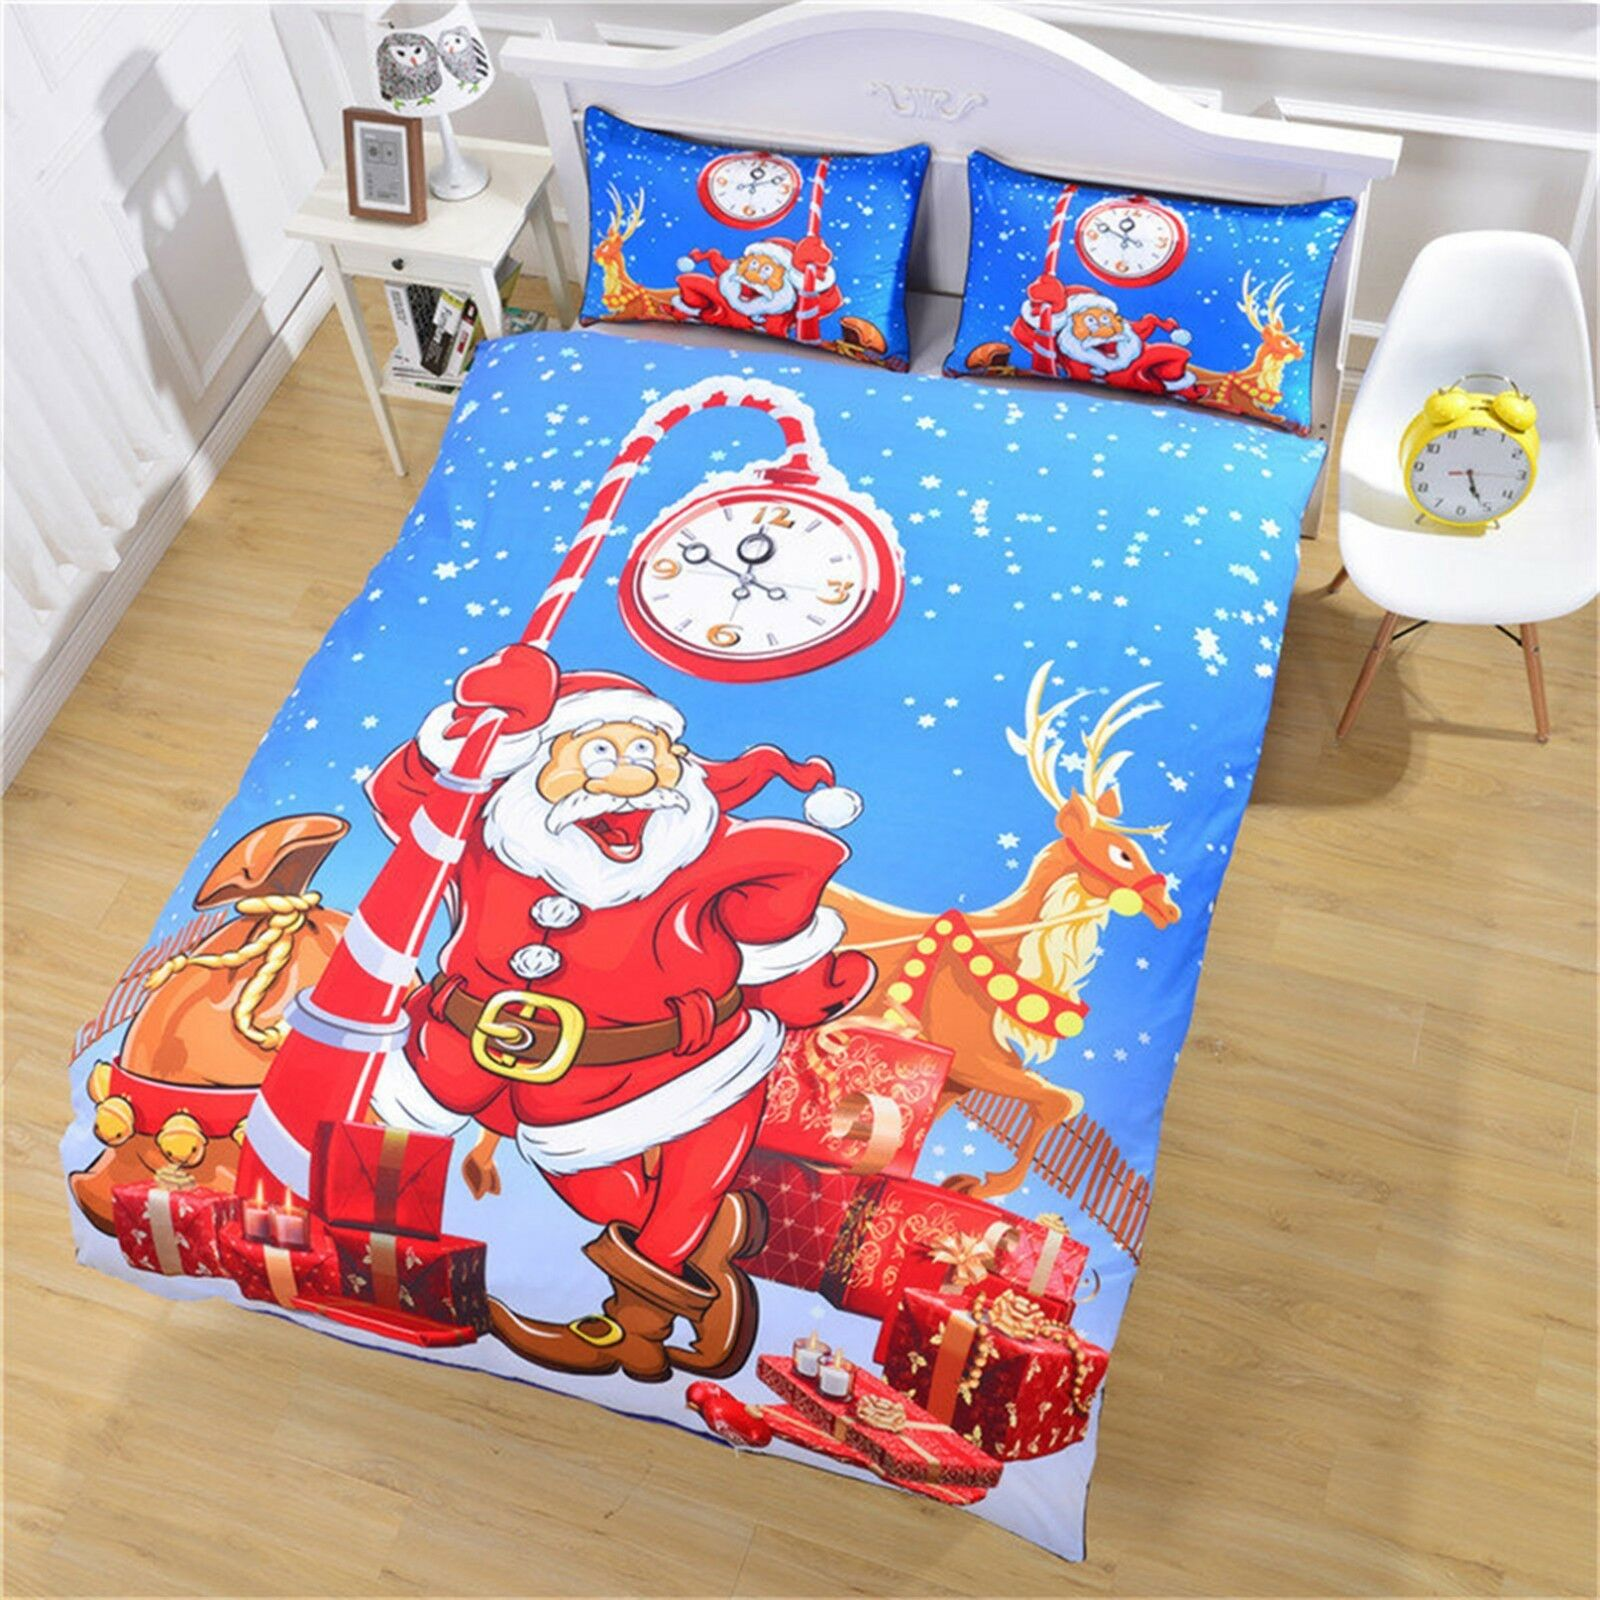 3D Christmas Xmas 483 Bed Pillowcases Quilt Duvet Cover Set Single Queen King AU